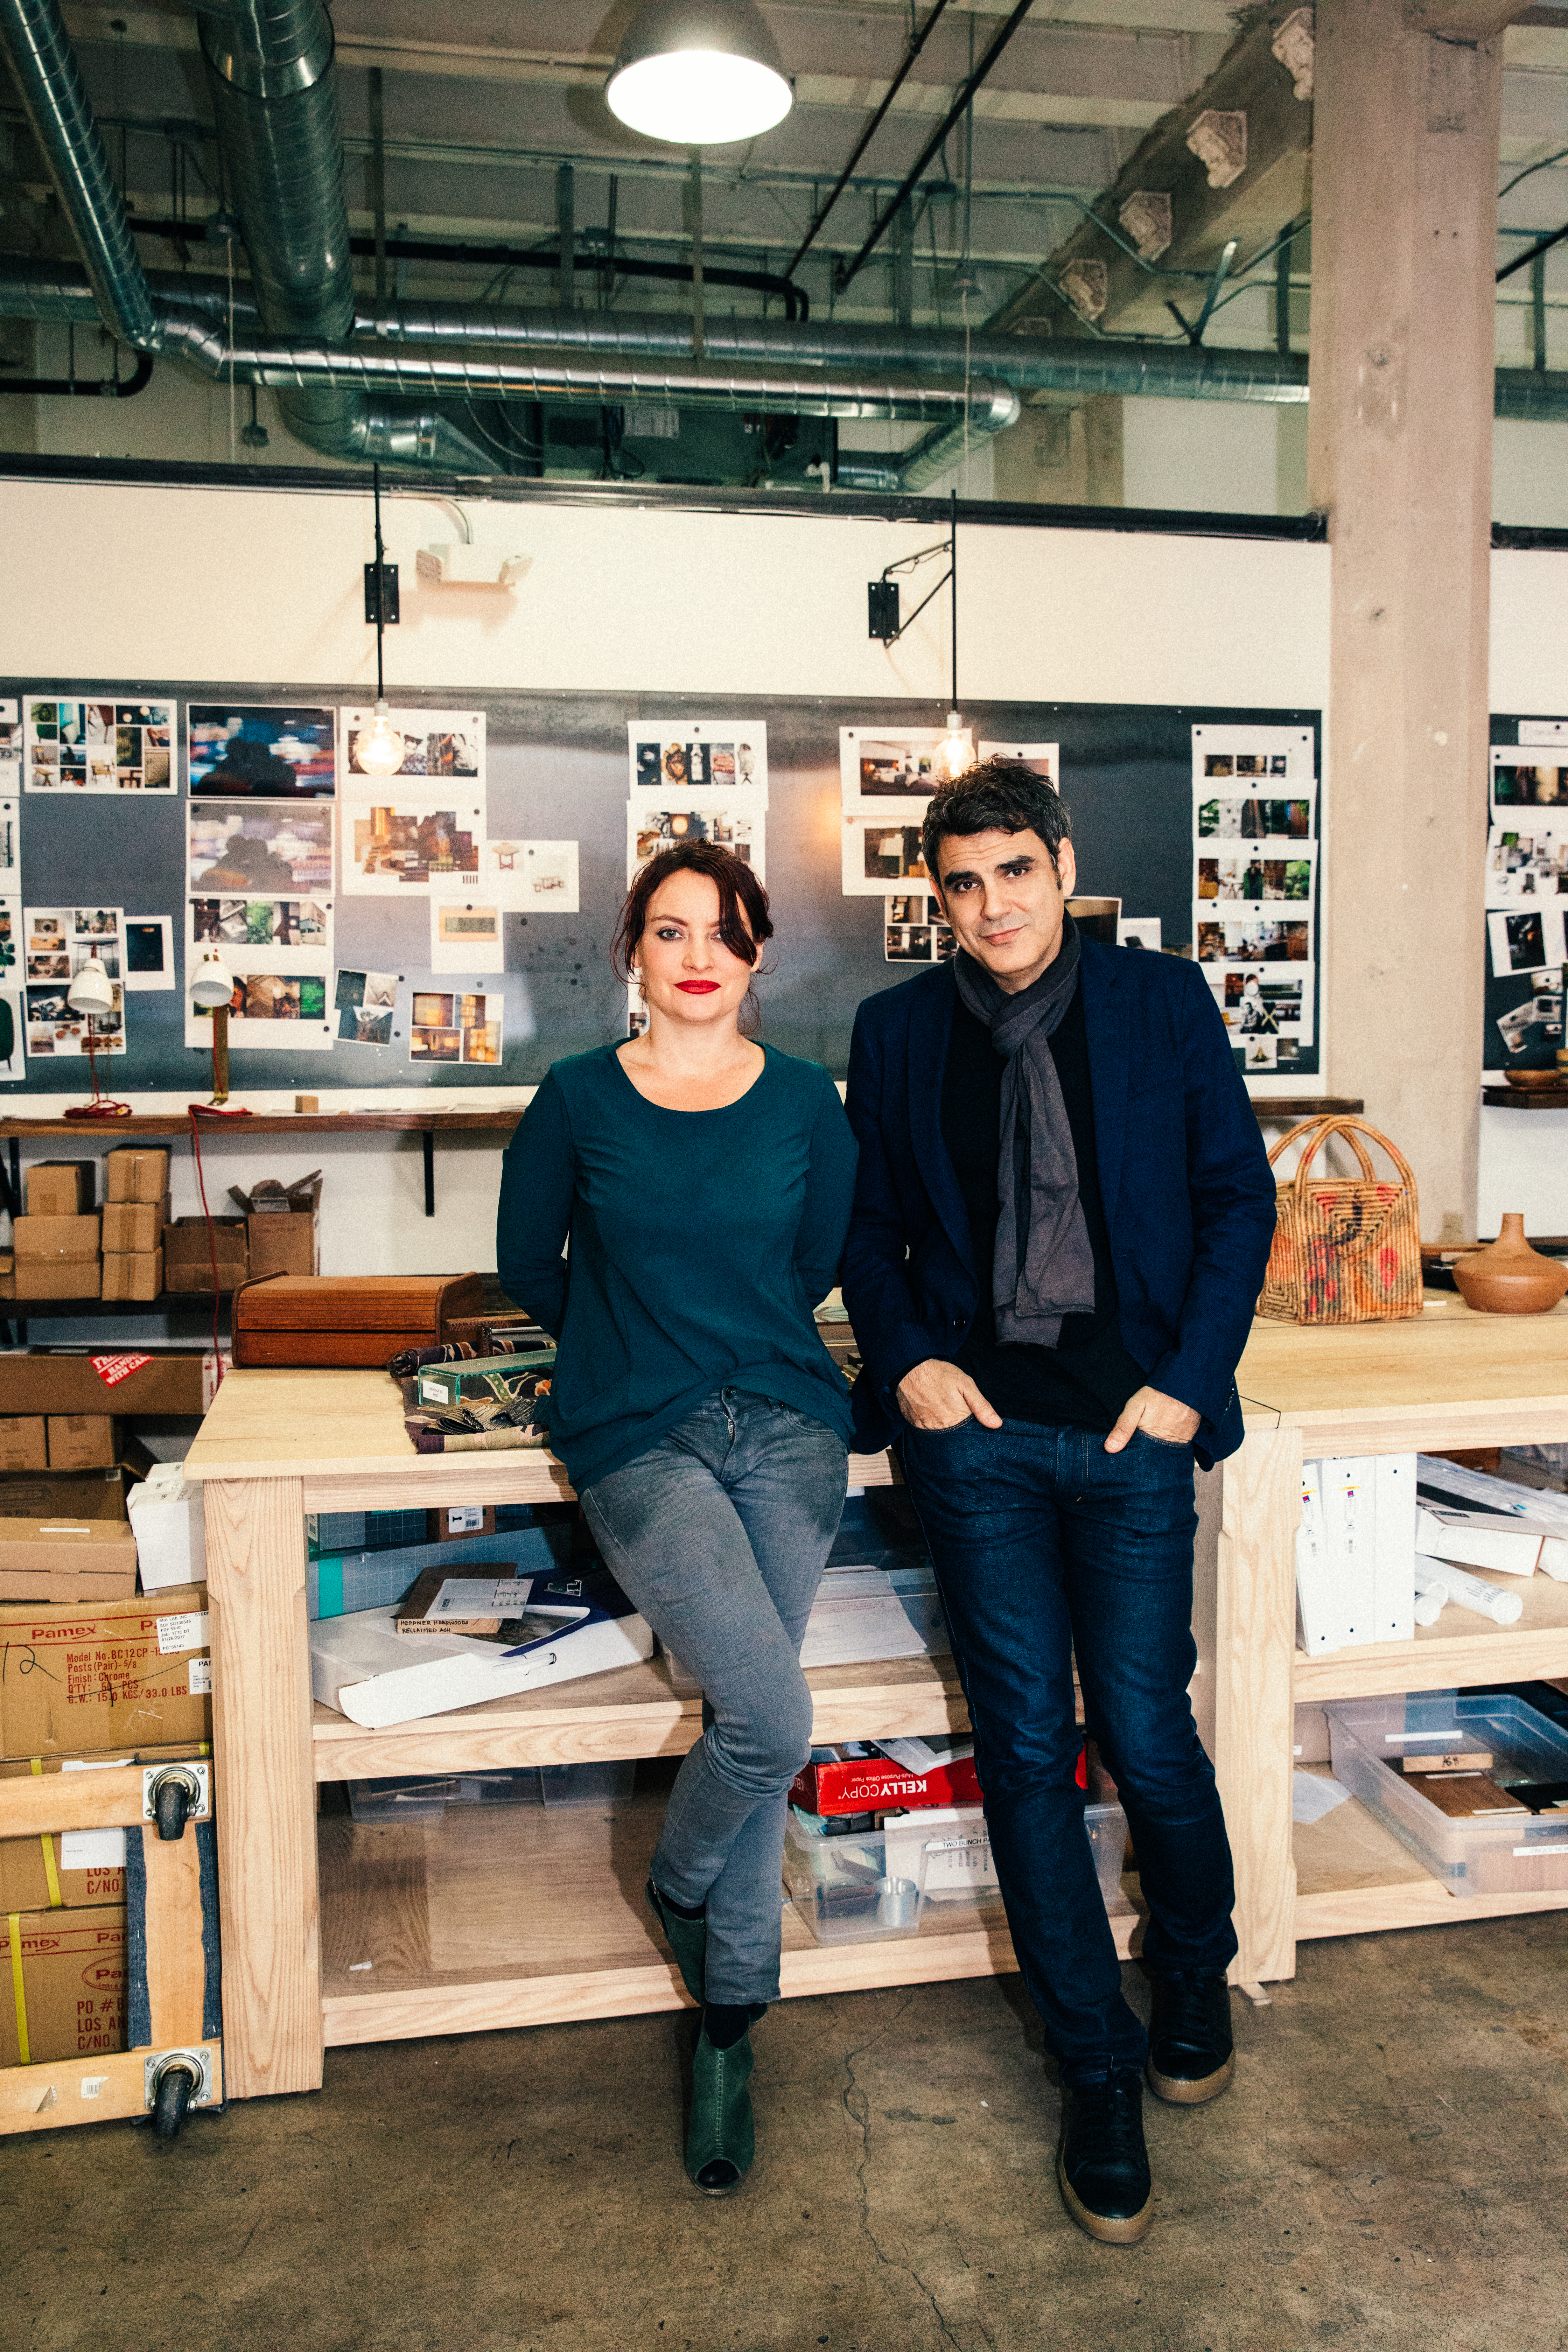 Studio Mai Coaxes the Tinder Generation to Look Up From Their Phones